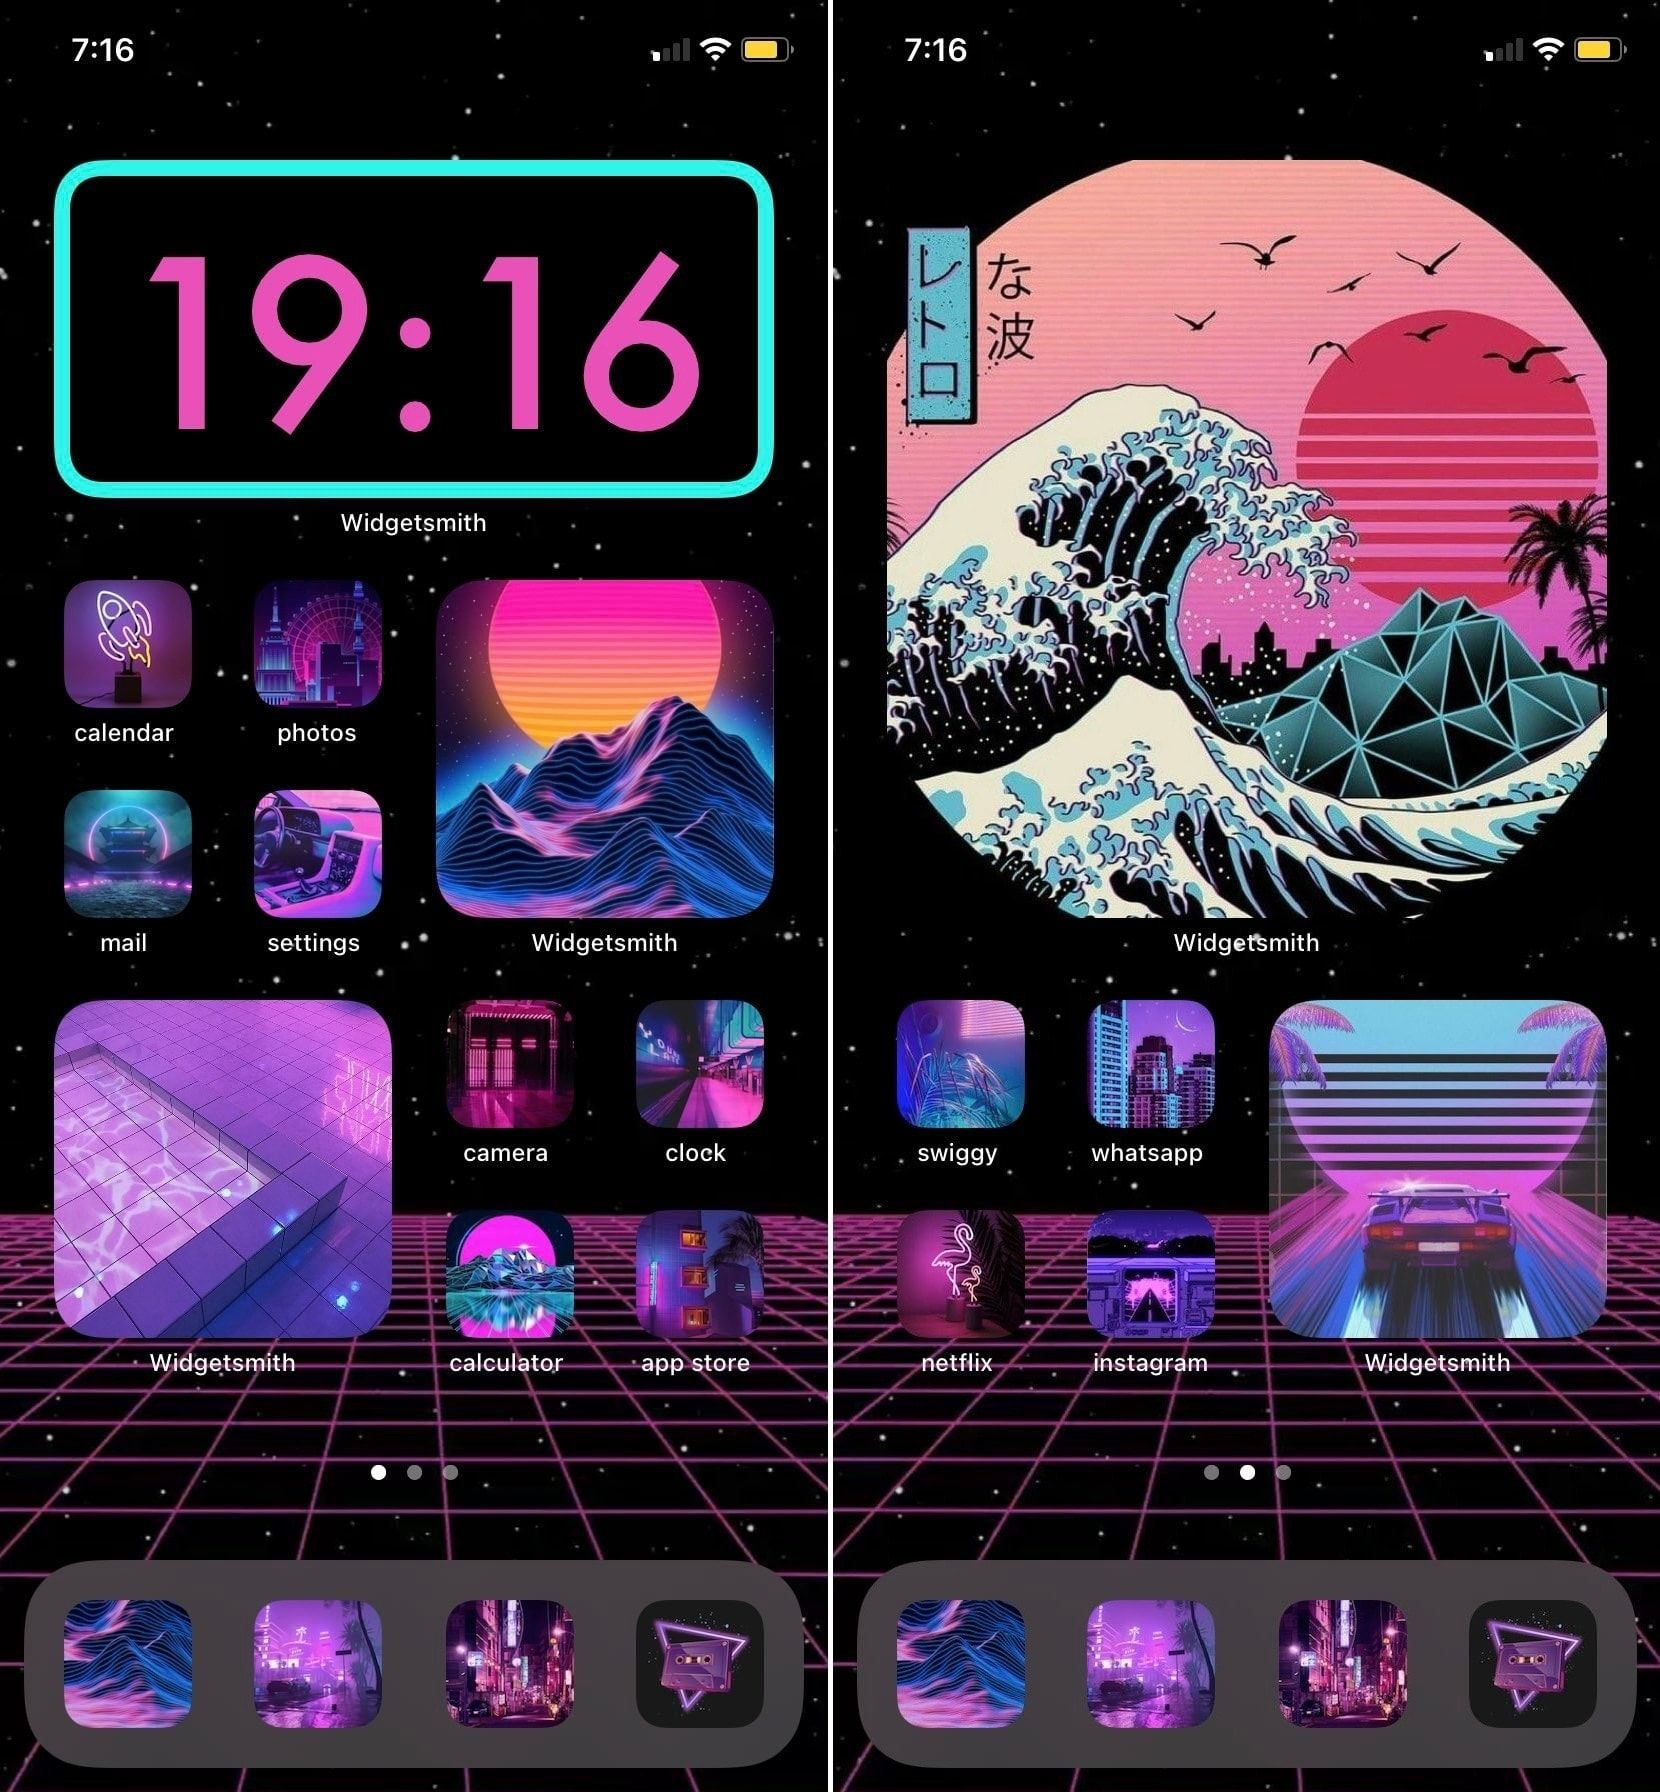 The Best Ios 14 Home Screens Ideas For Inspiration Iphone Wallpaper App Homescreen Iphone Ios App Iphone